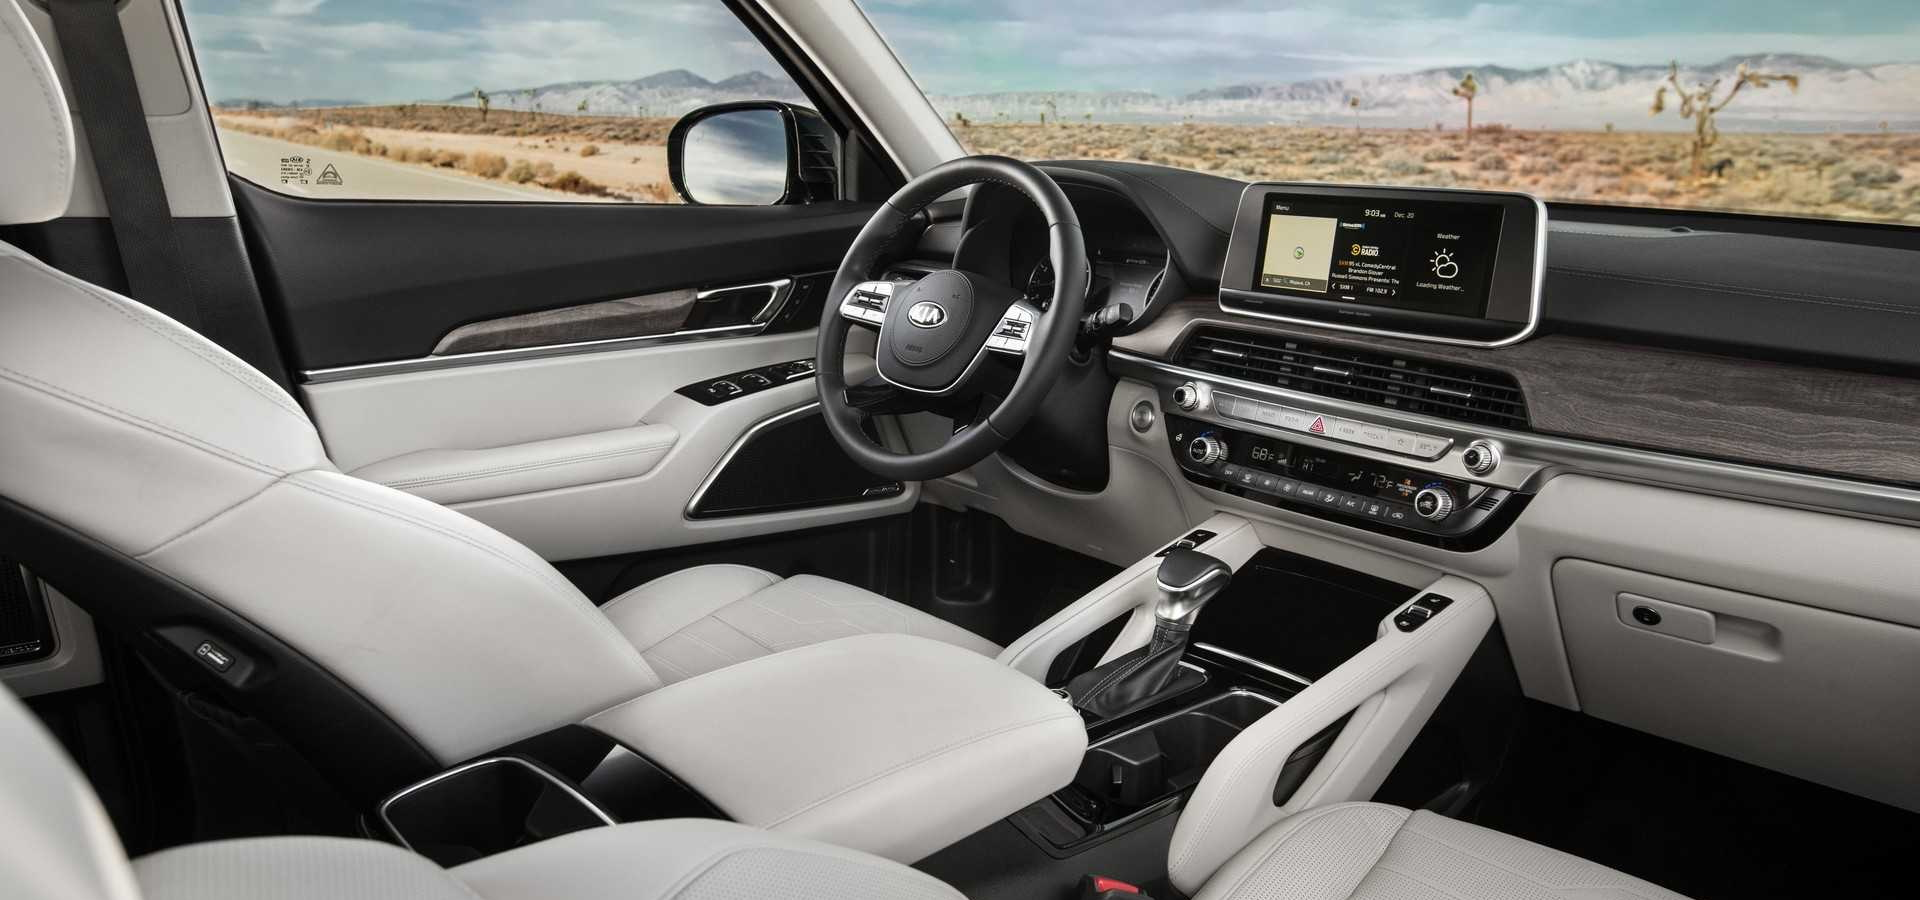 Top Rated Car Seats 2020.2020 Kia Telluride Priced From 31 690 Packs Loads Of Standard